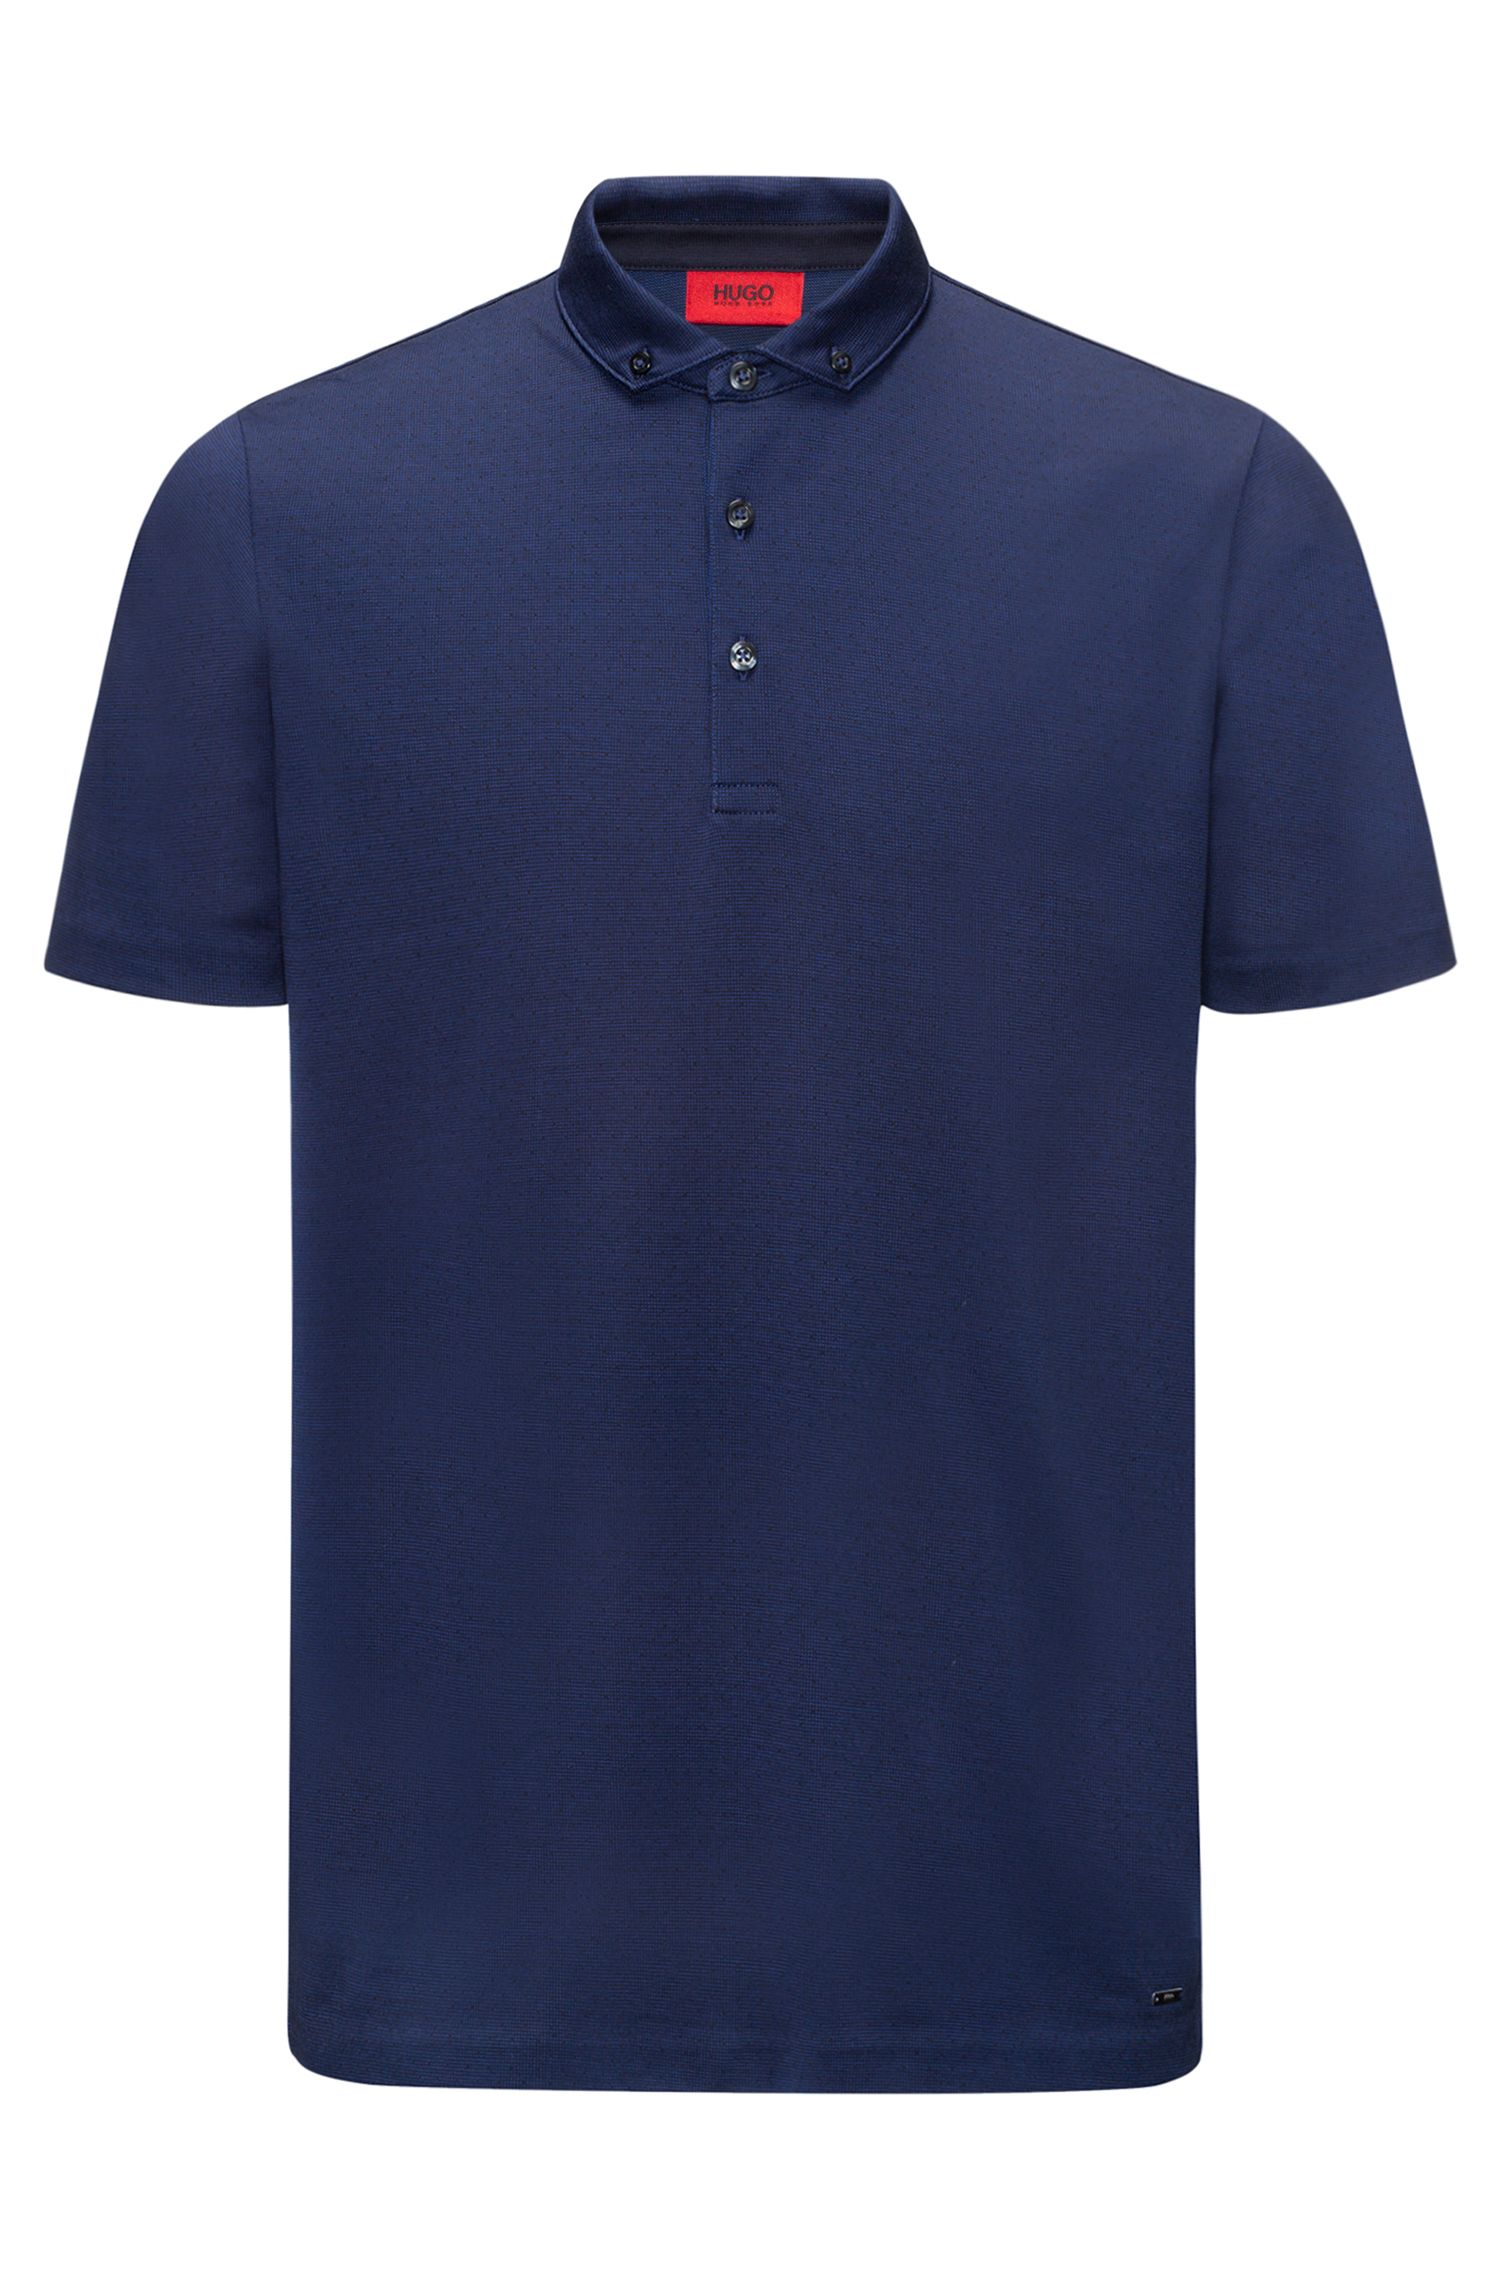 Polo regular fit en jacquard de algodón mercerizado